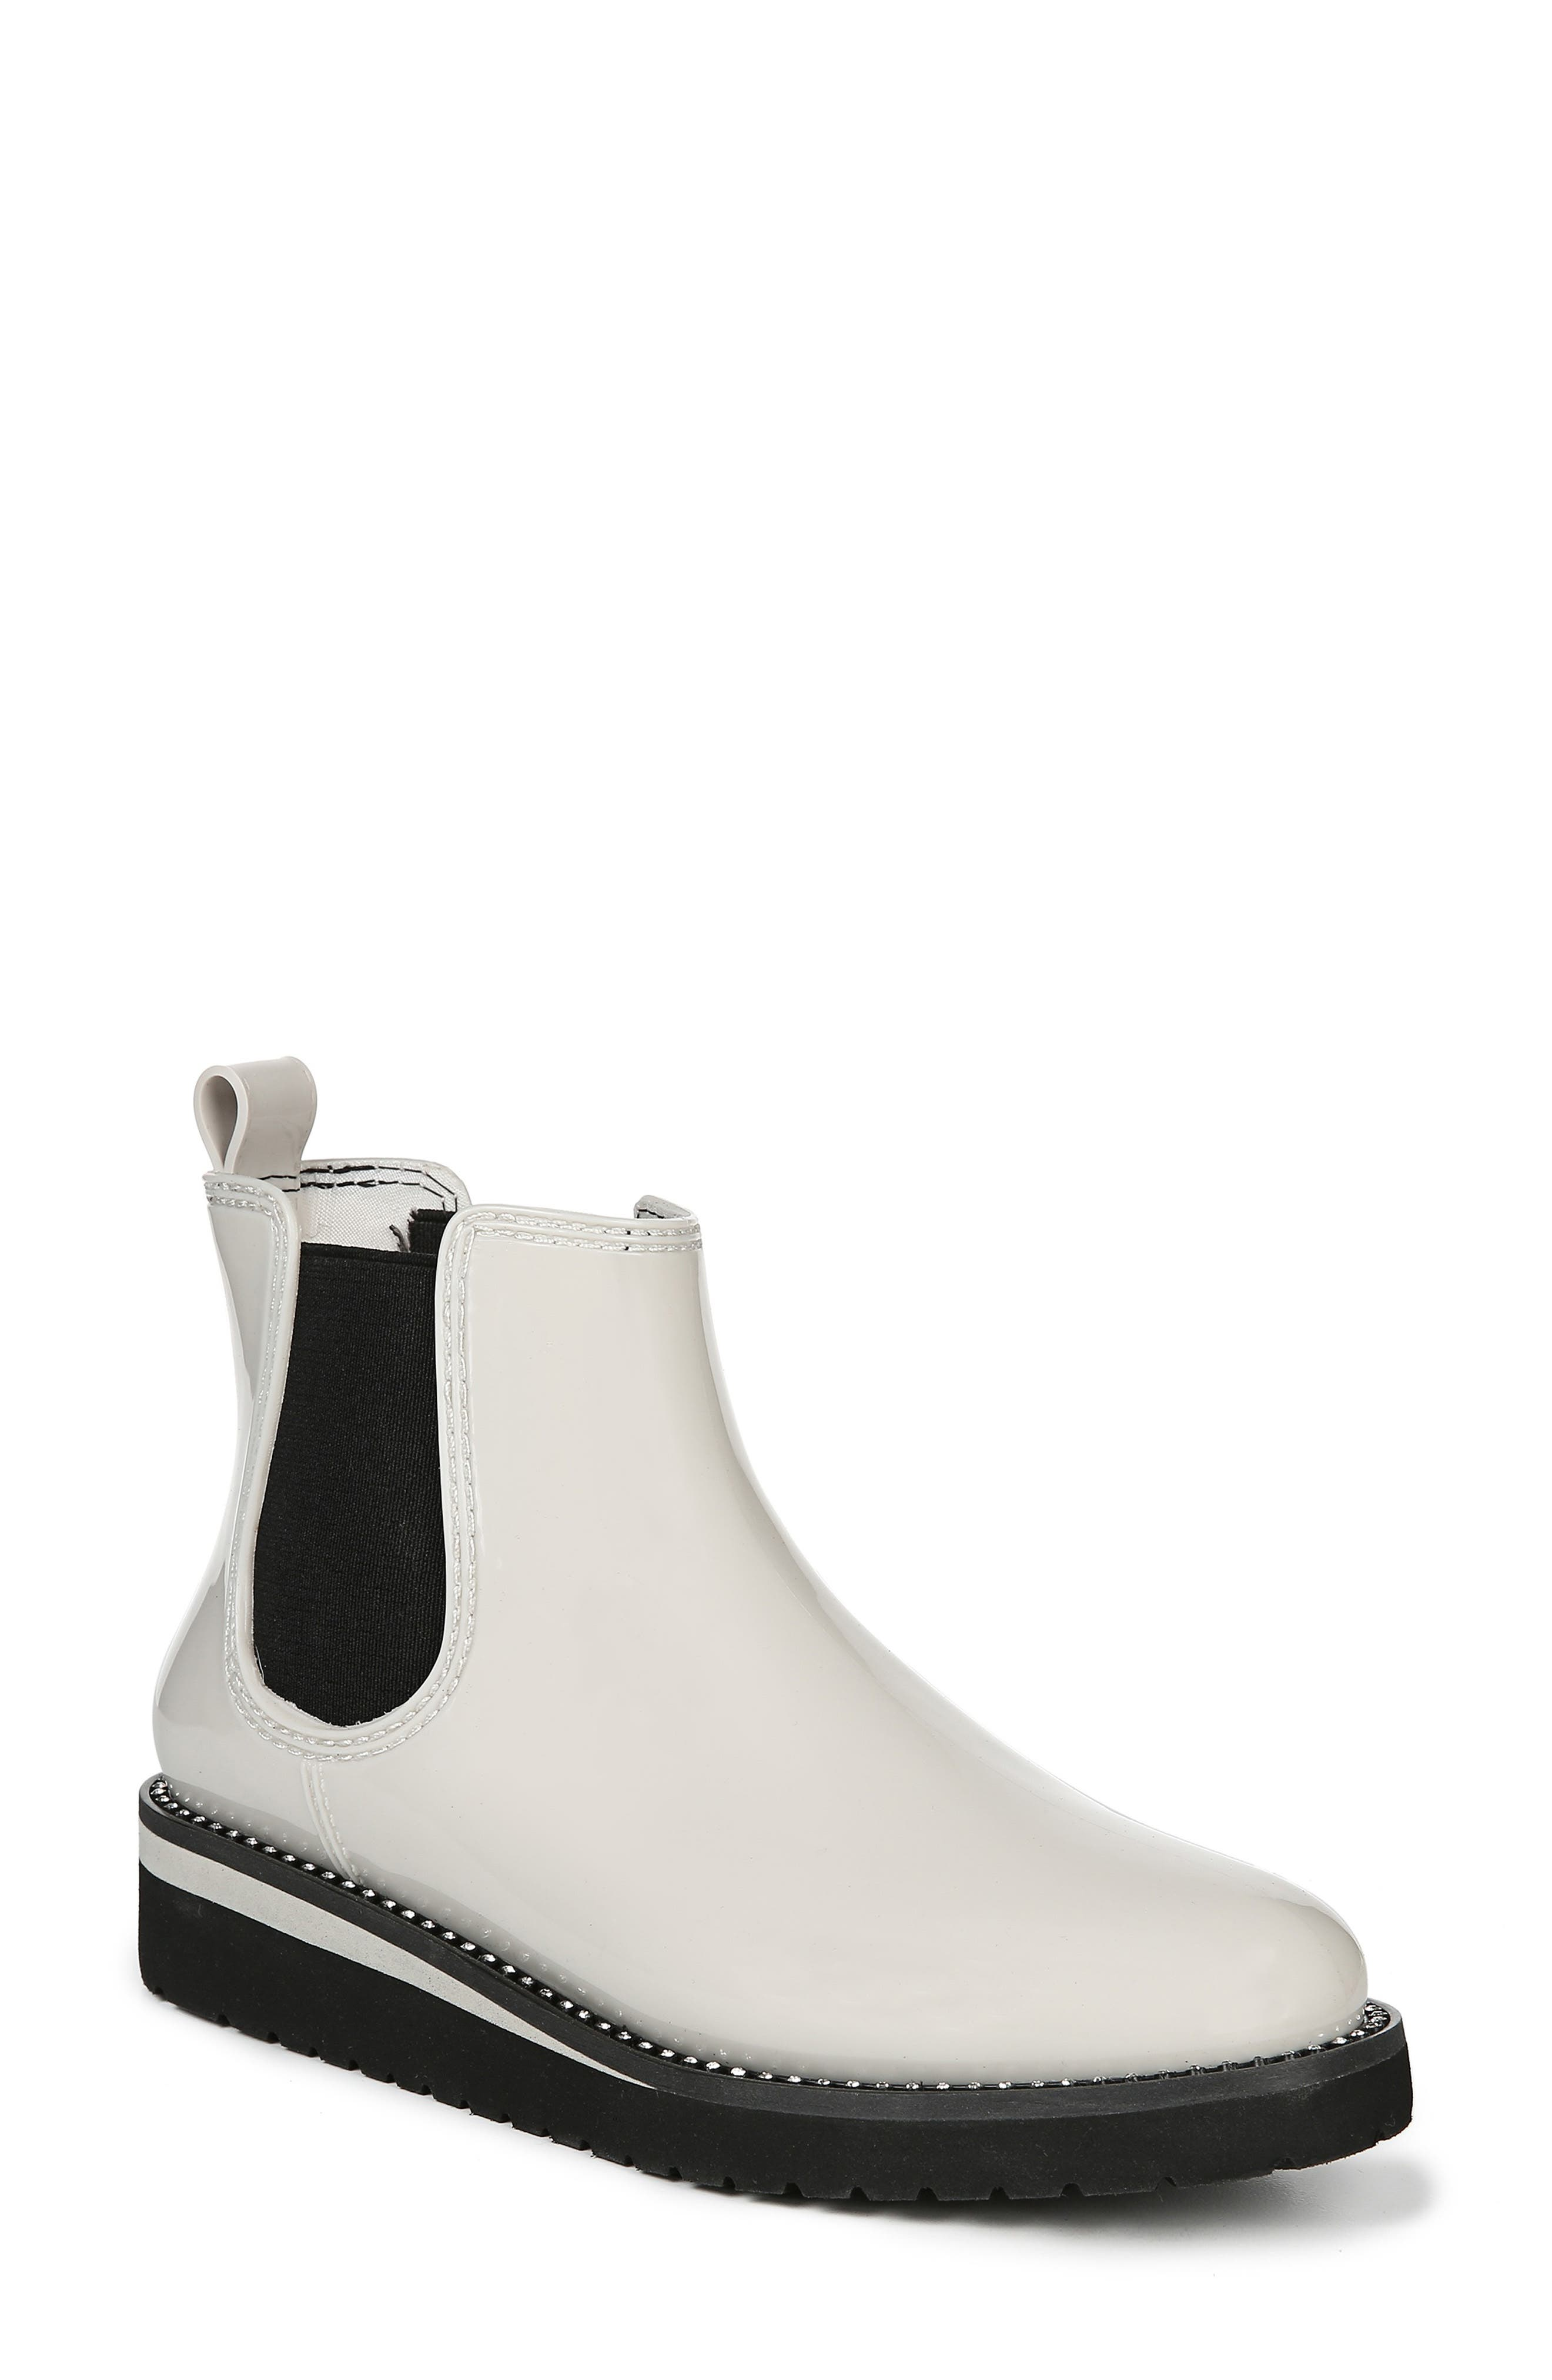 Naturalizer Luna Waterproof Chelsea Boot, Beige